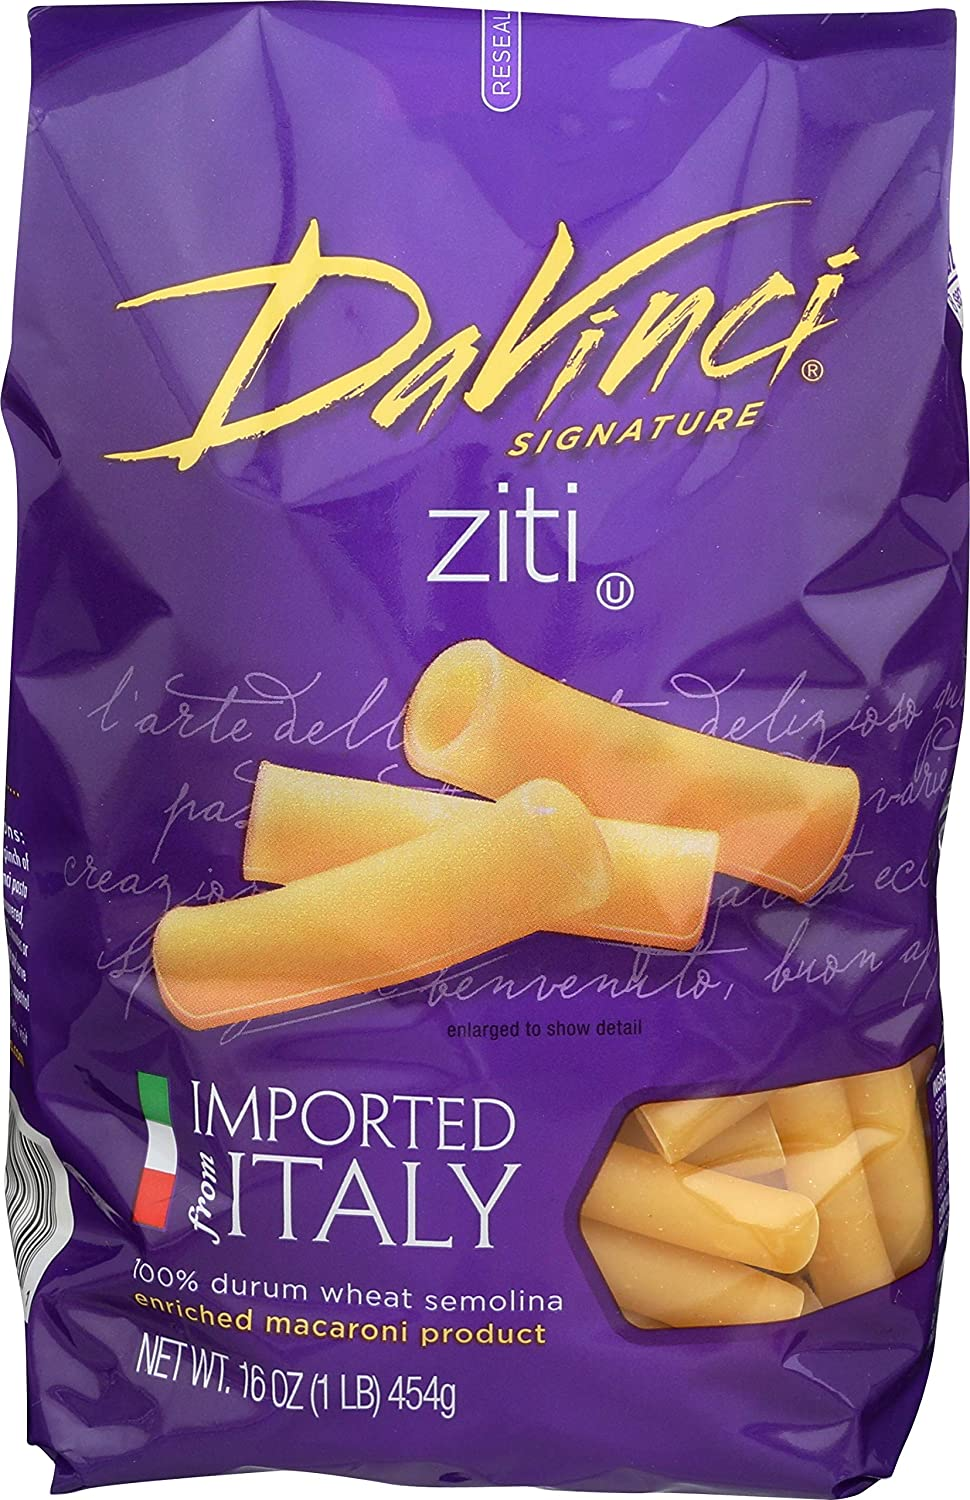 DaVinci Signature Cut Ziti 16 Ounce Recommendation Resealable Bags 1 Pack Max 90% OFF of